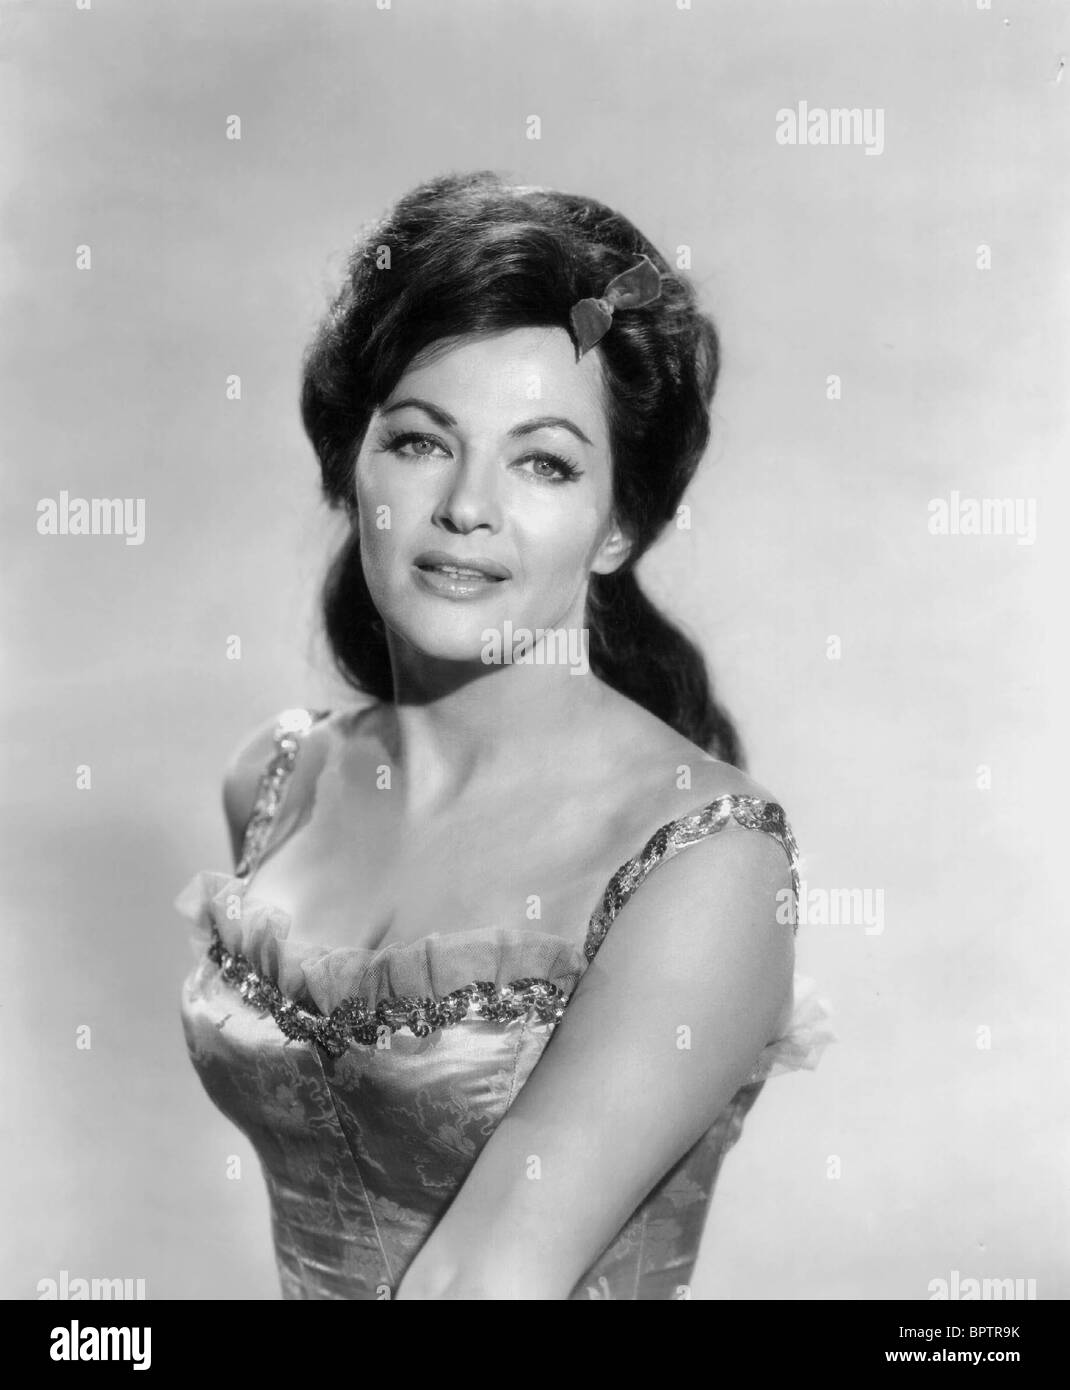 yvonne de carlo net worth